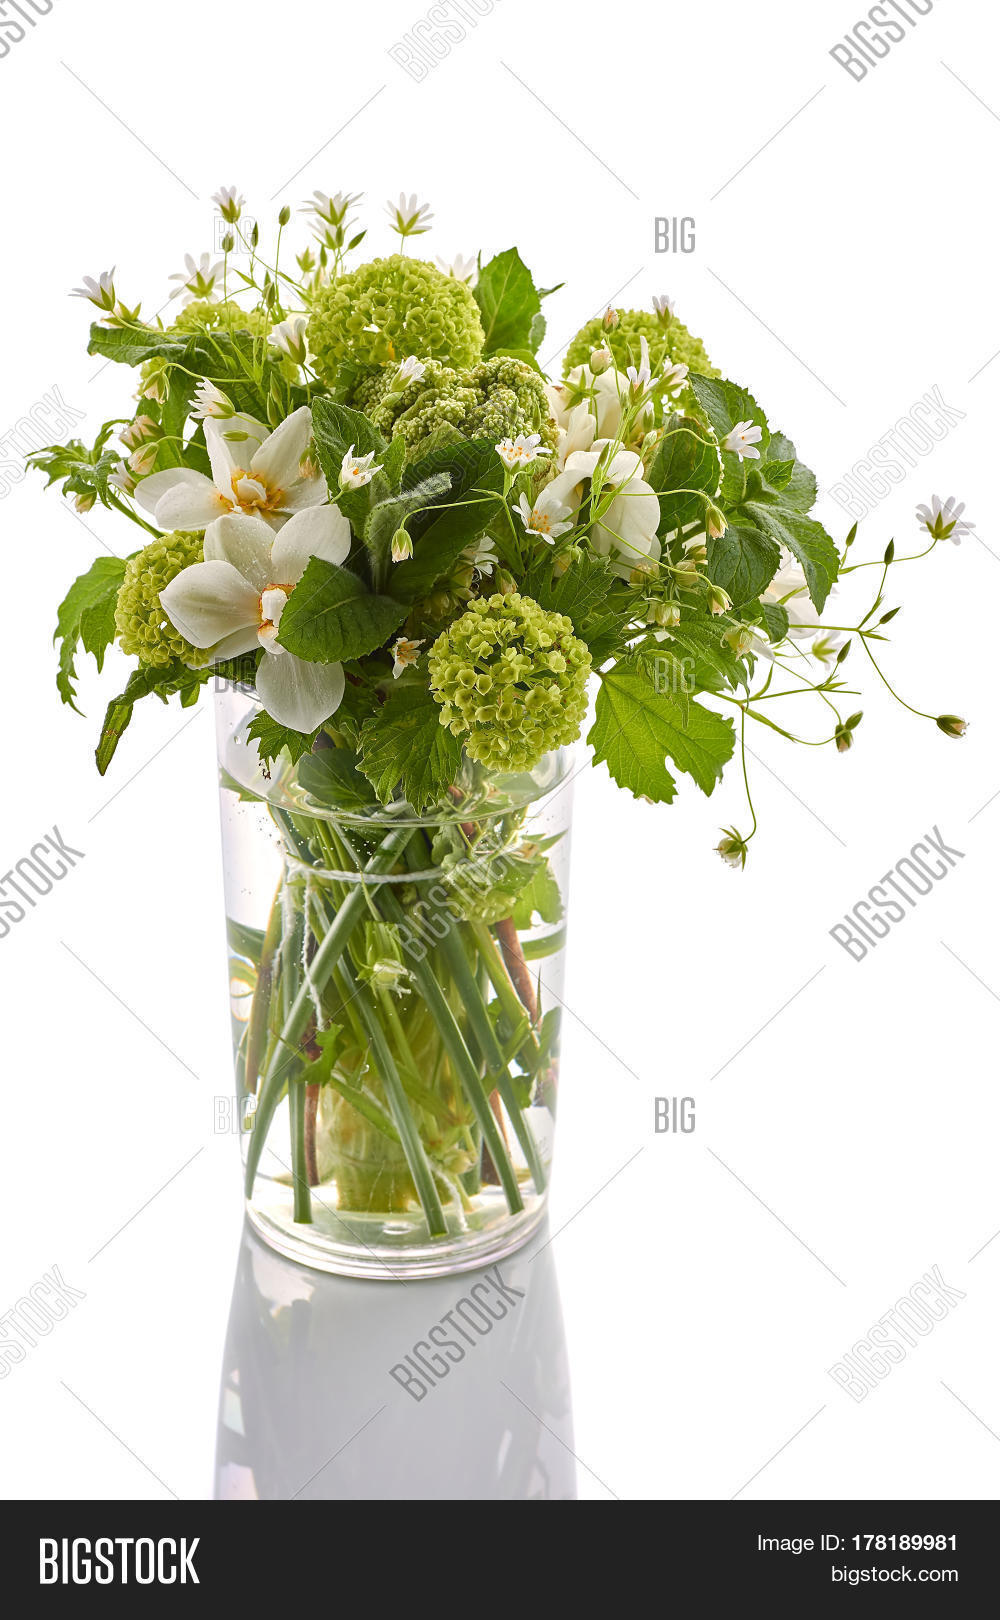 Bouquet Spring Flowers Image & Photo (Free Trial)   Bigstock